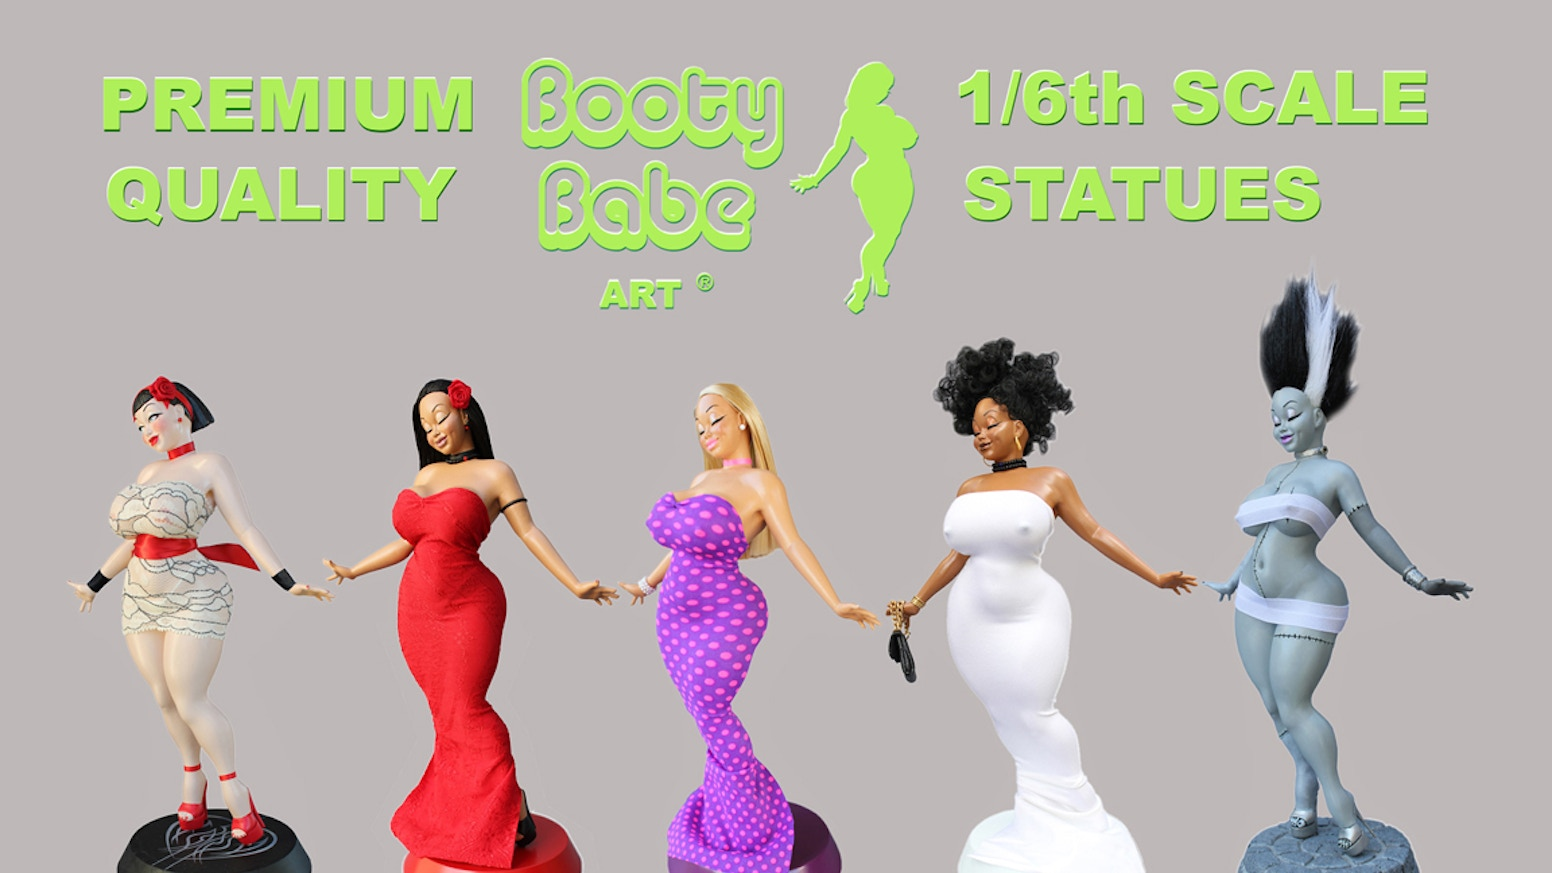 To produce 5 NEW Booty Babe statues and ensure the future of Booty Babe Art (TM) for many years to come...